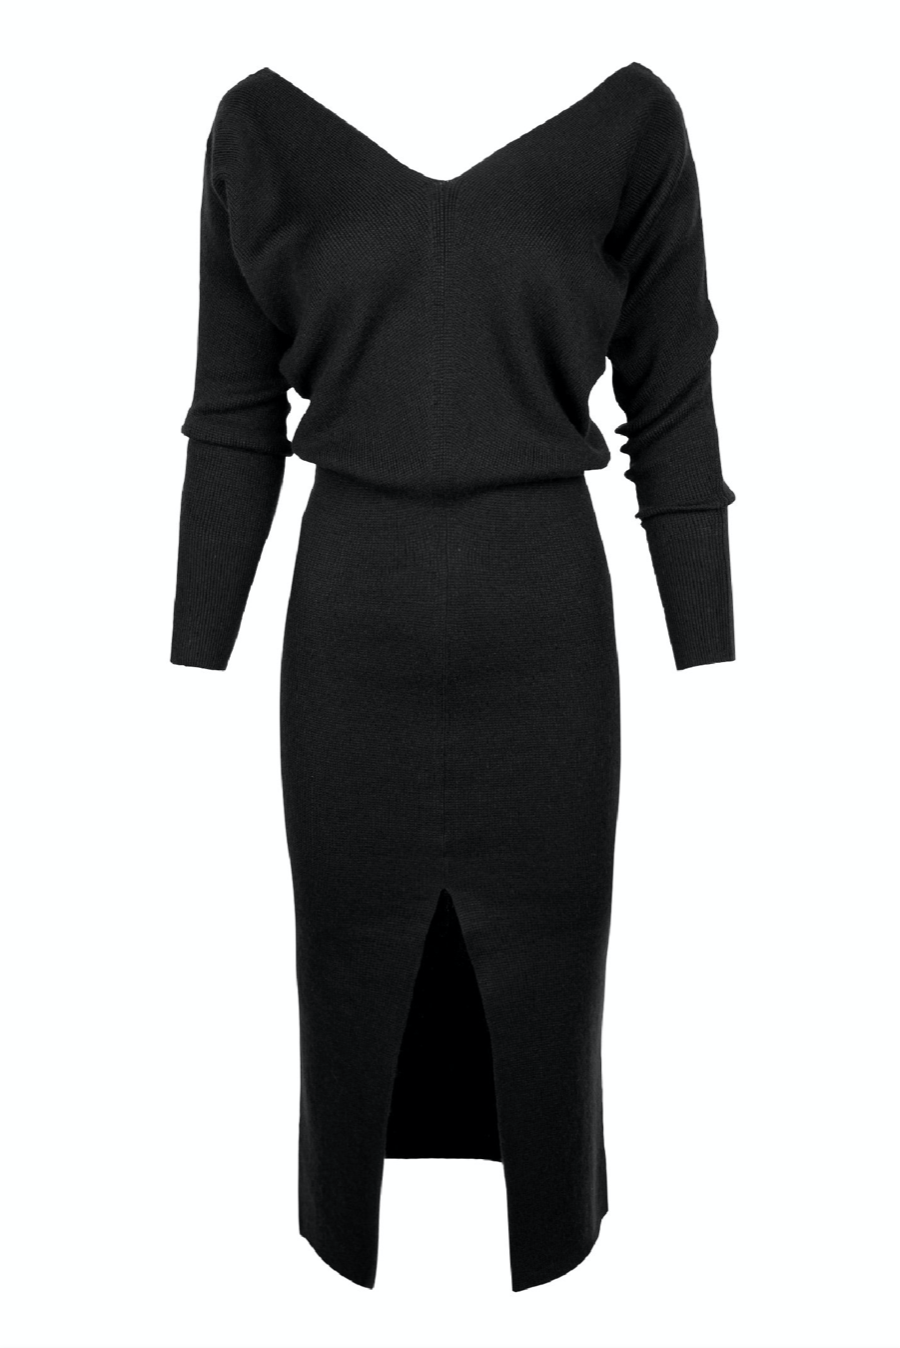 KES x Lars Aniz Long Sleeve Dress w/ Slit